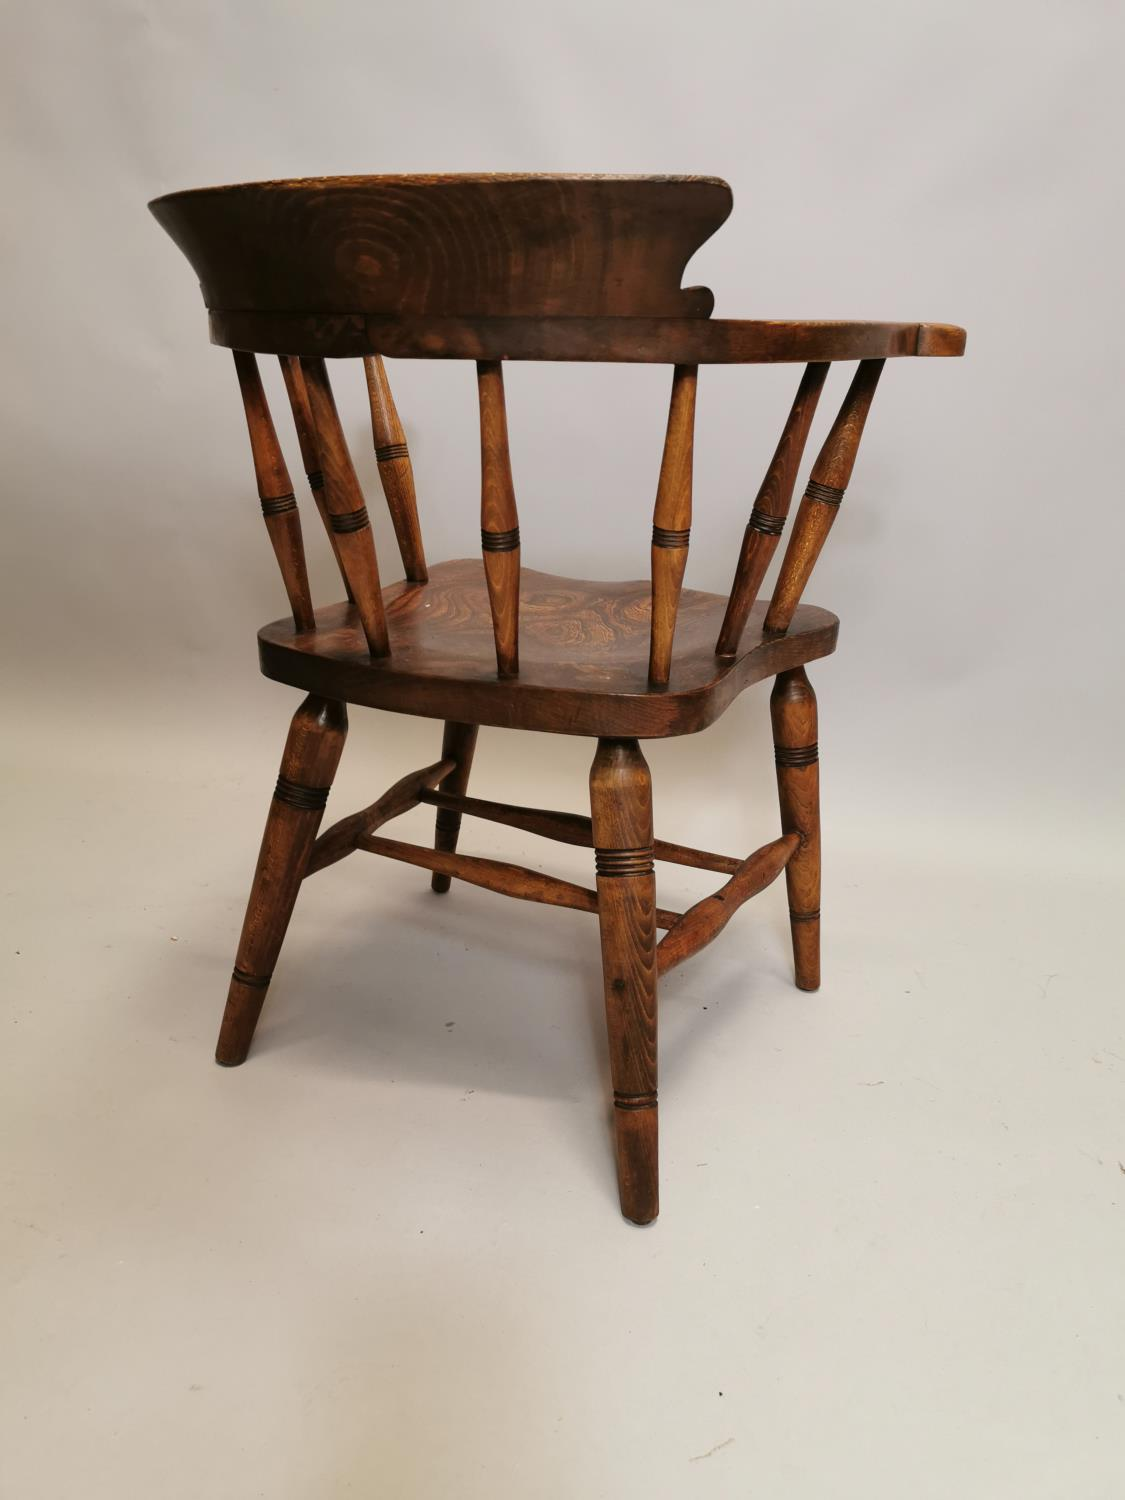 Early 20th C. Ash and elm smoker's bow - Image 7 of 7